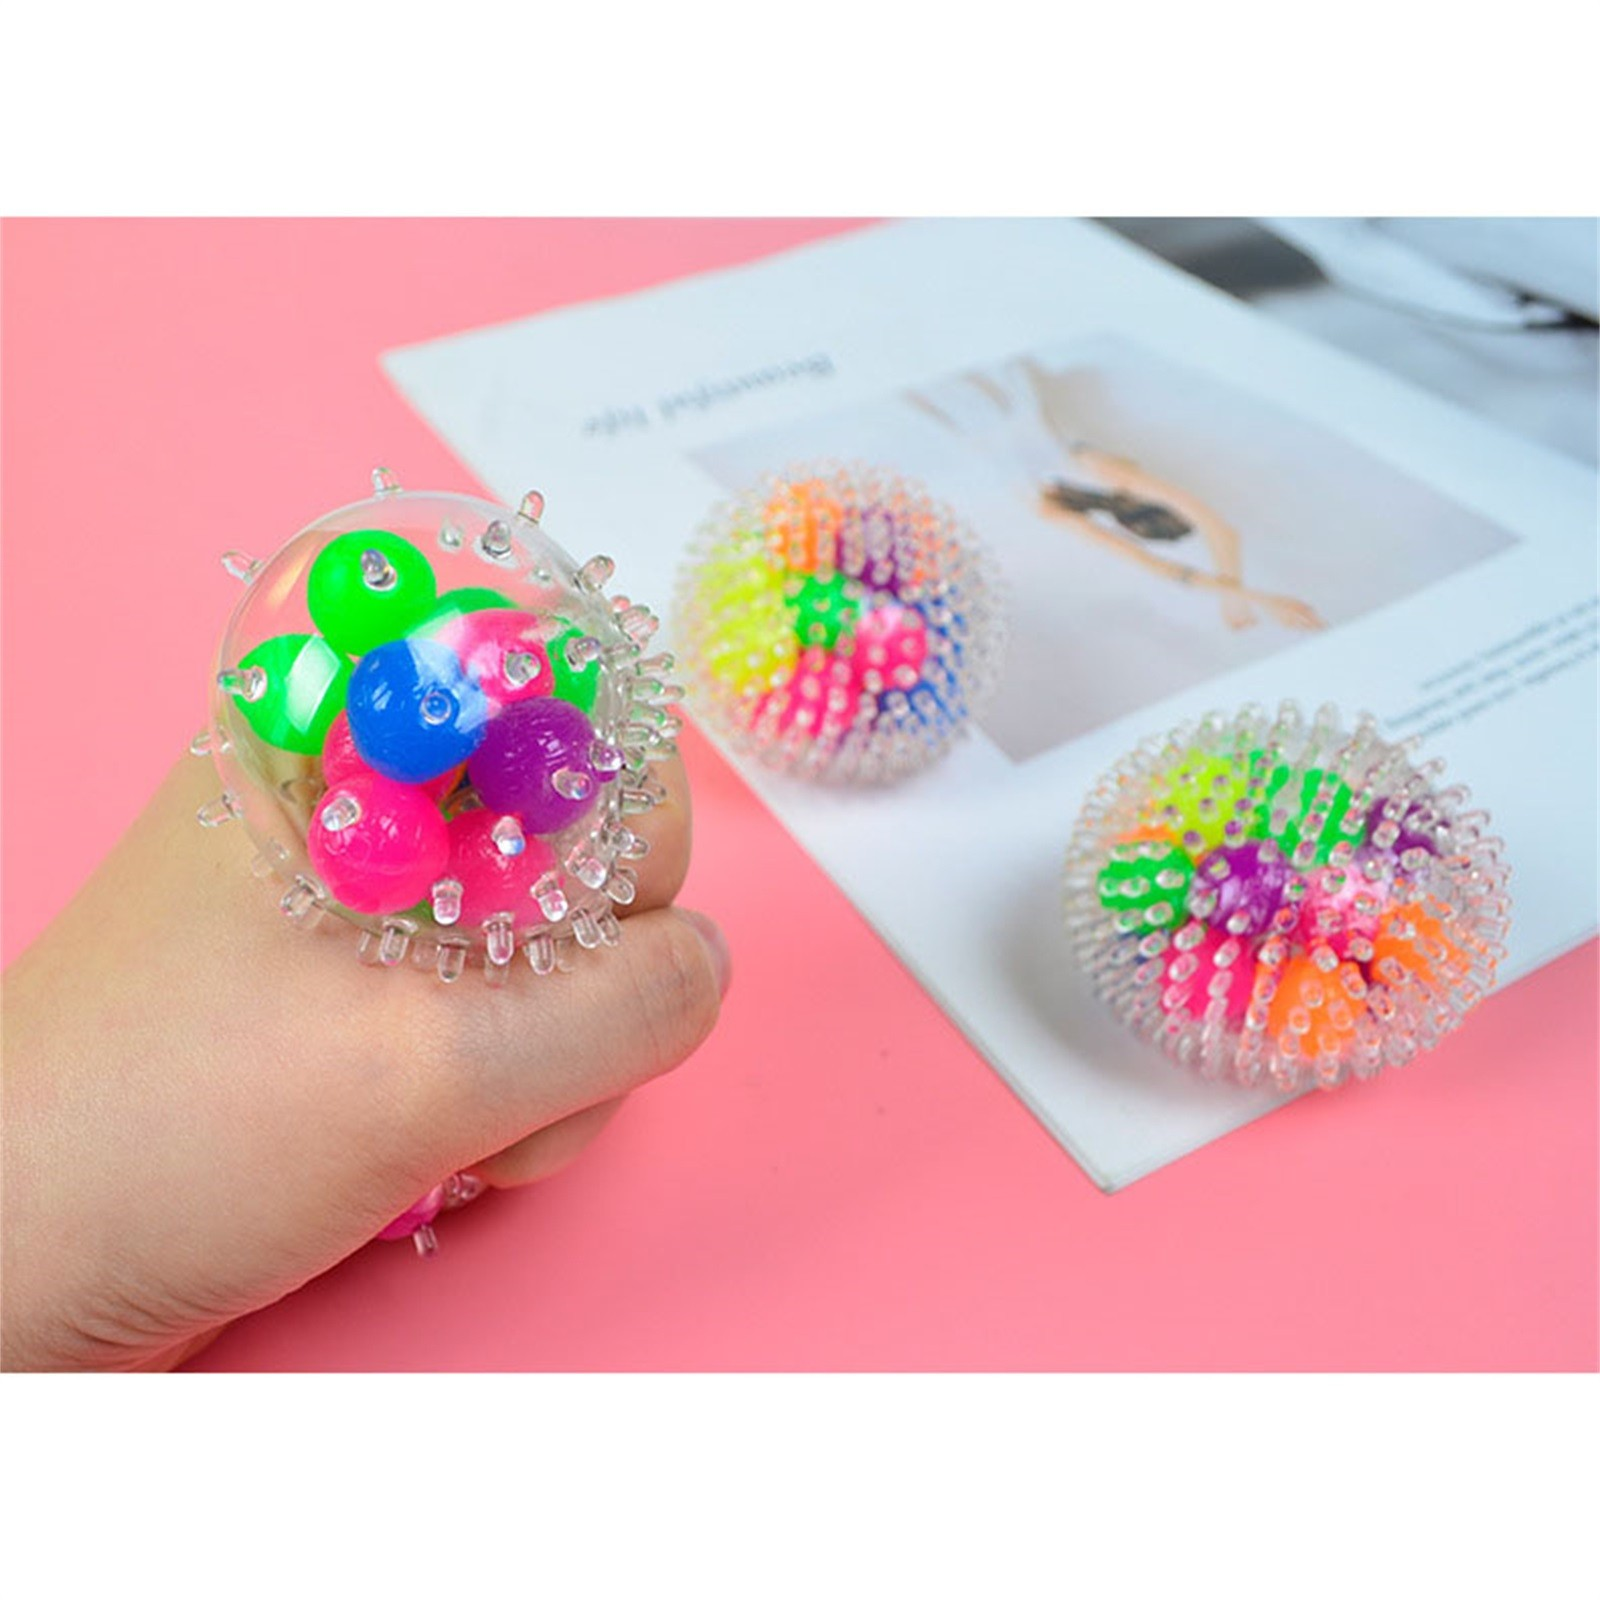 Toy Pressure-Toy Stress Adults for Kids Funny 10PCS Rainbow-Ball Spongy Squeezable Colorful img2